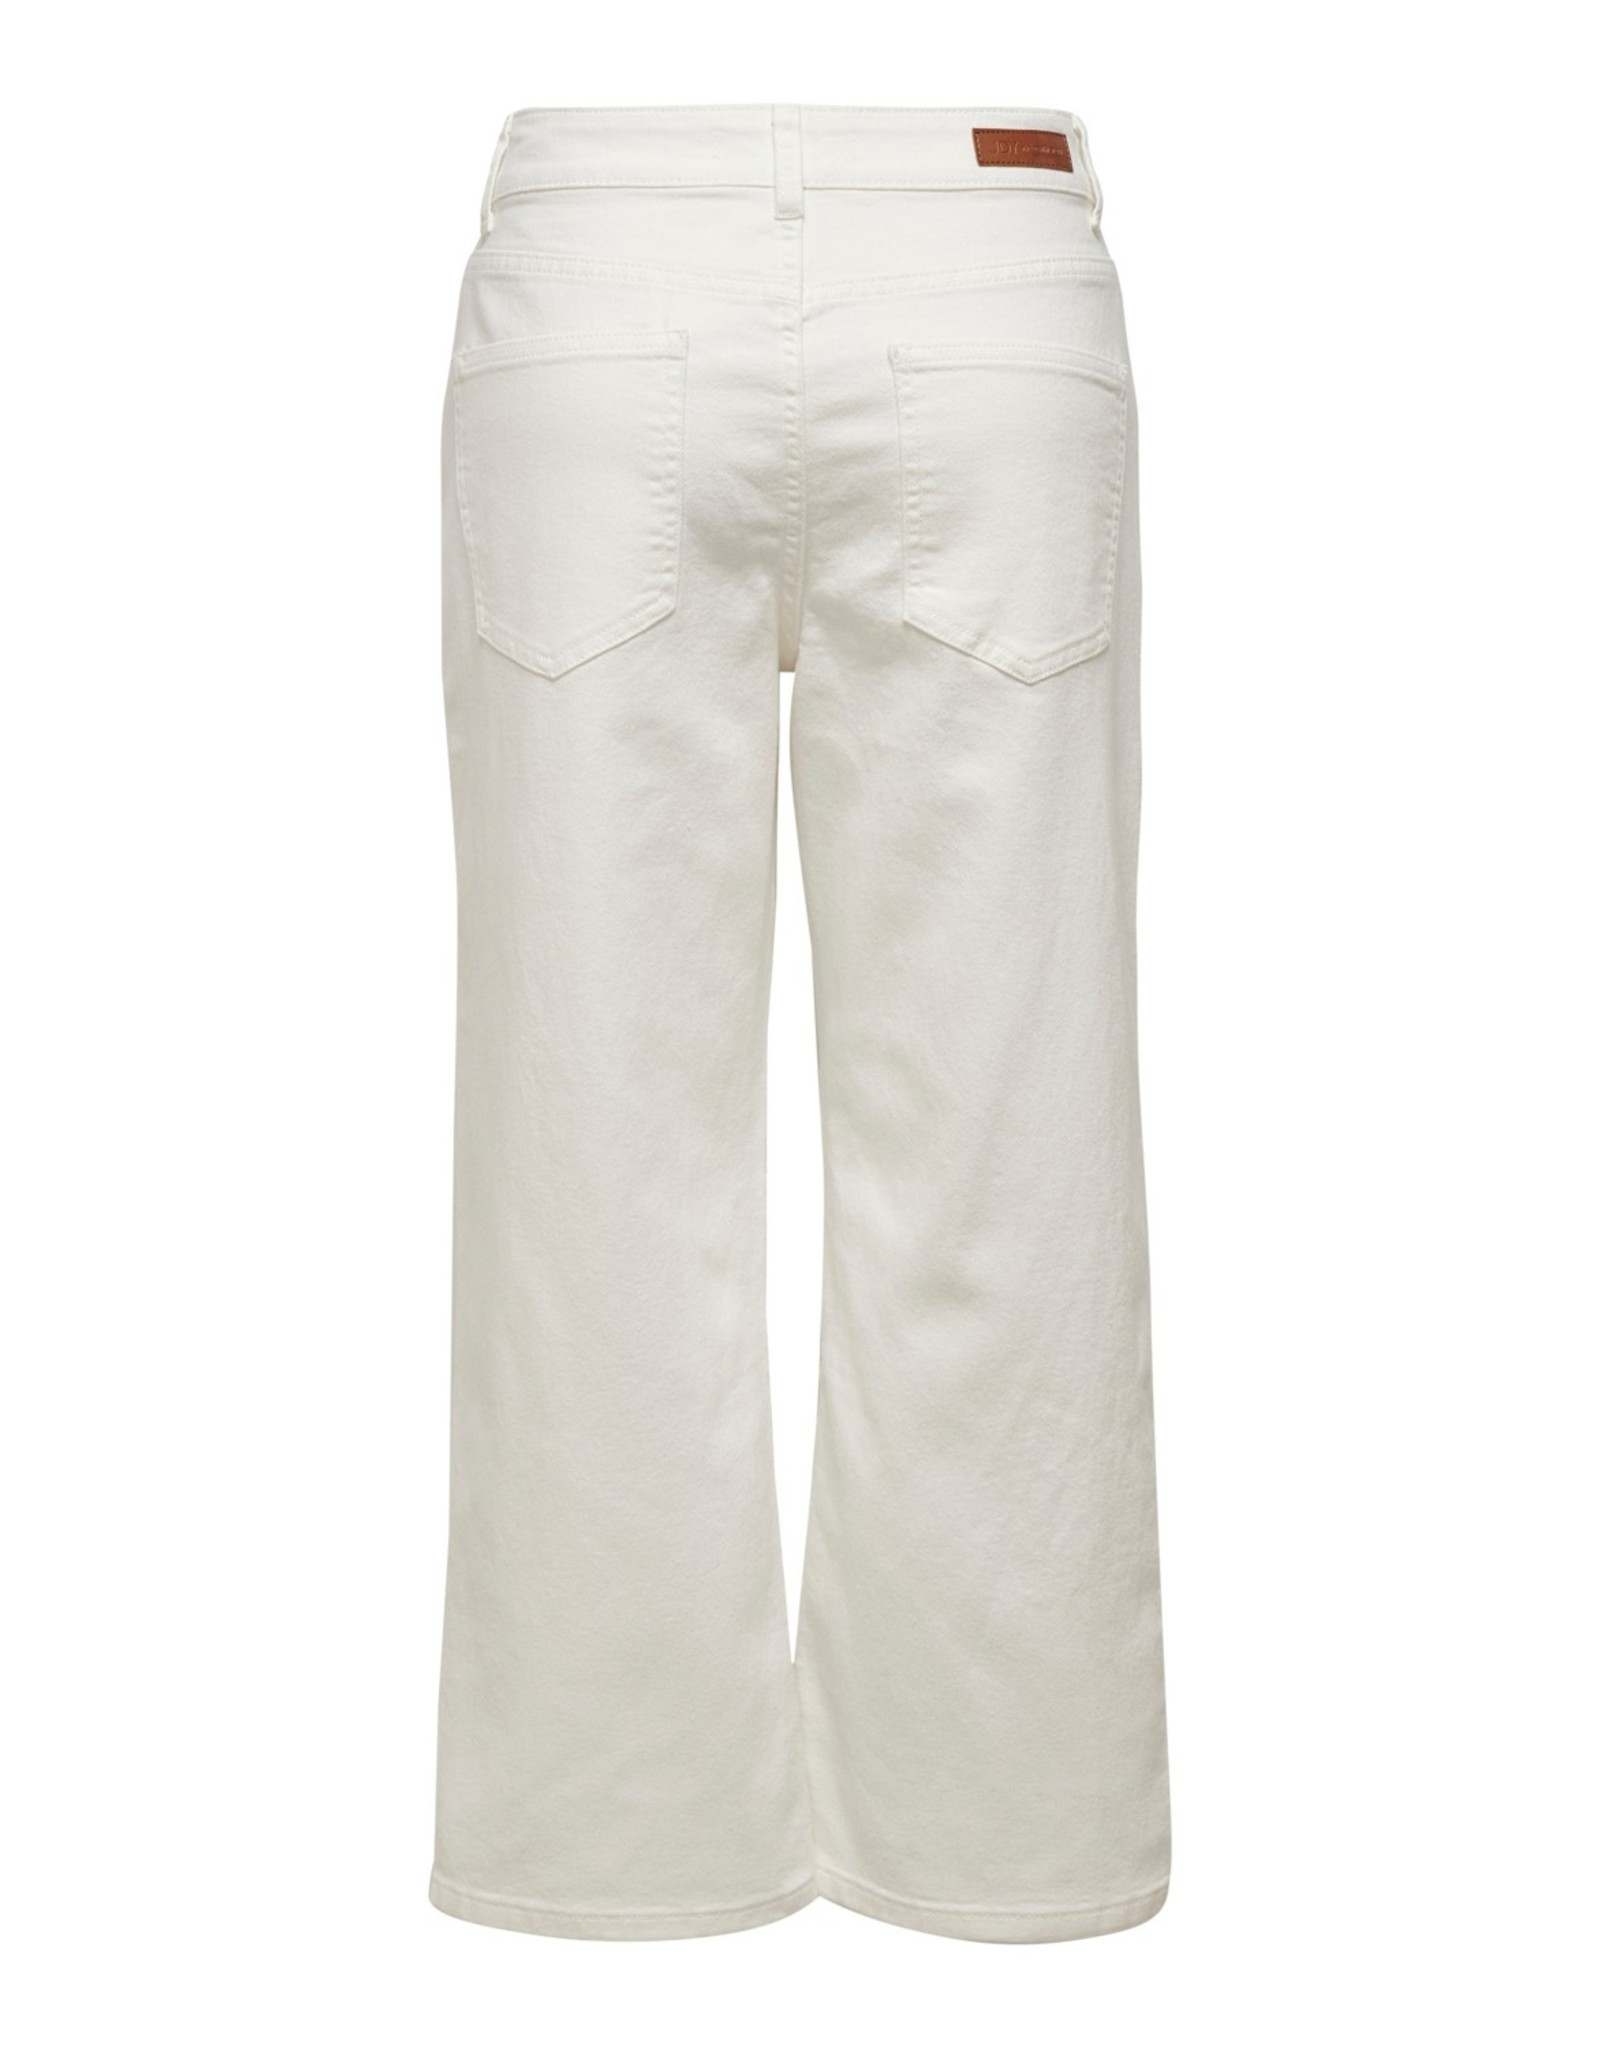 ANKLE JEANS WHITE